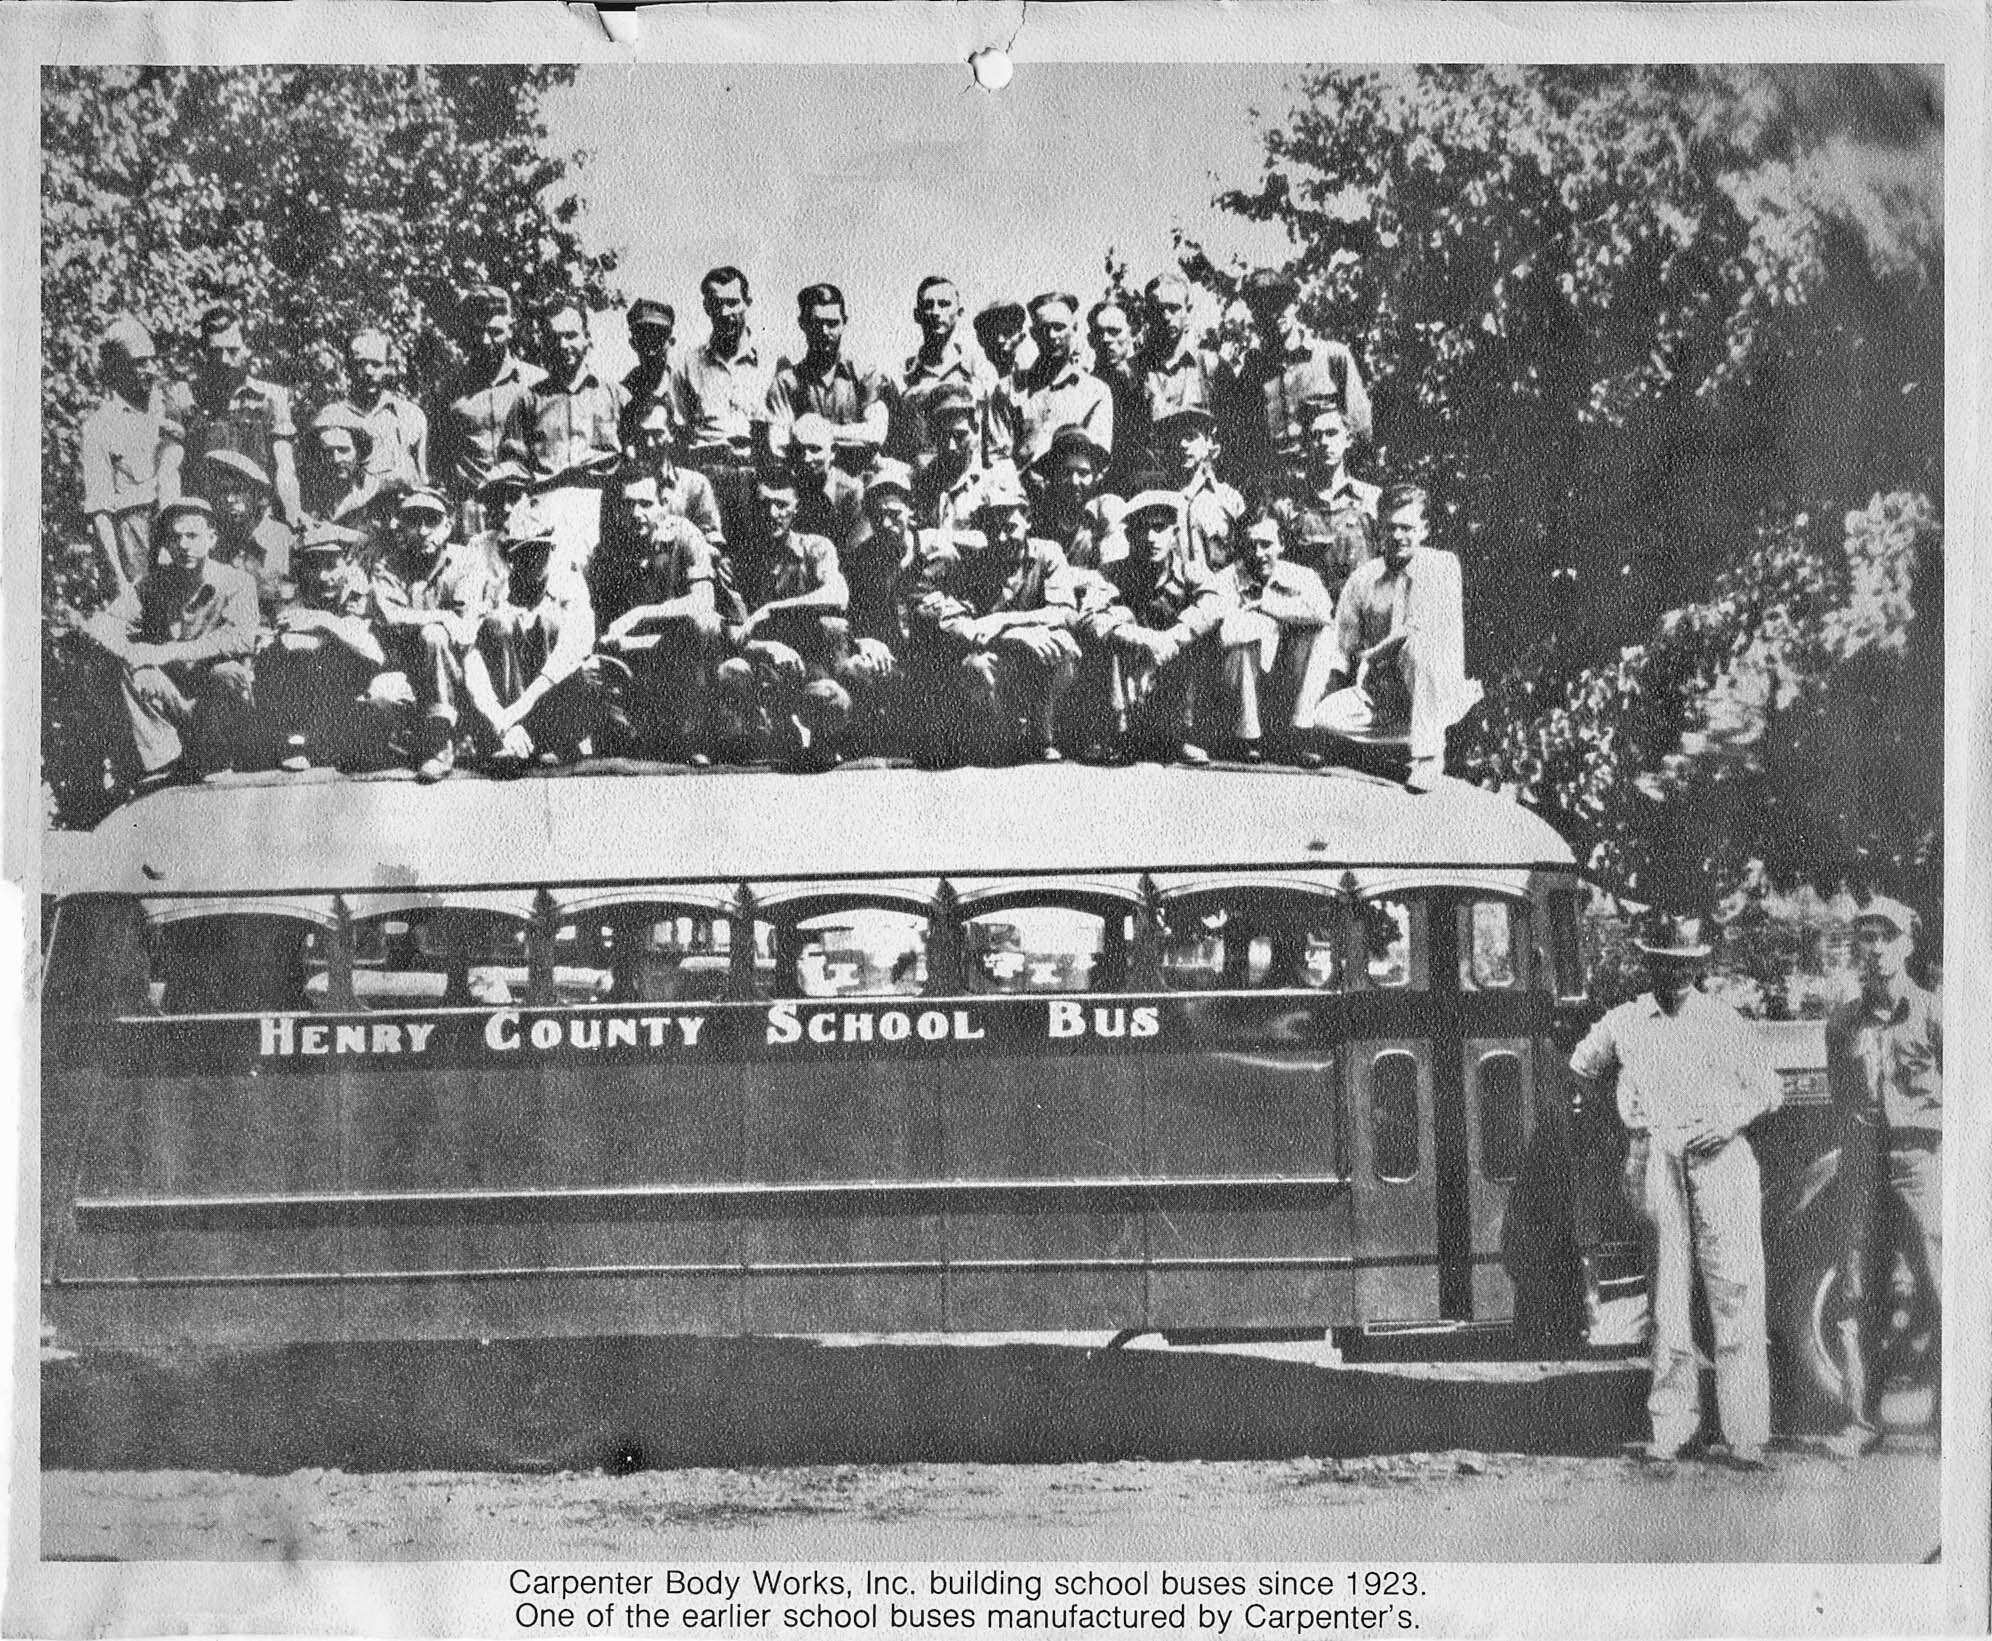 This is the first all-metal school bus ever produced by Carpenter Body Works. It is a 1935 Dodge bus. All 35 Carpenter employees are standing on top of the bus, and Ralph Carpenter and Ollie Eager standing in the foreground.